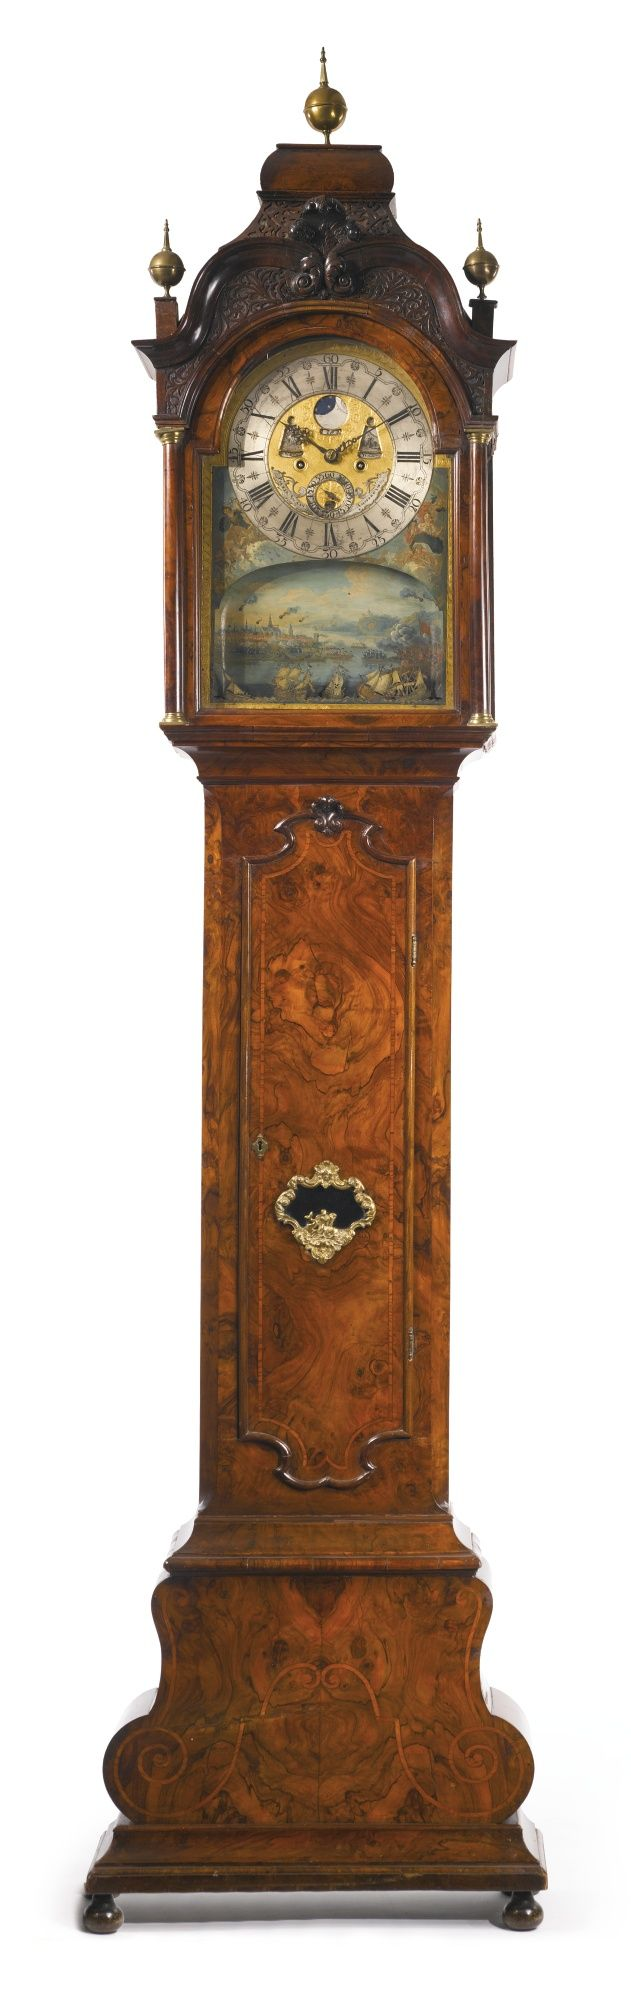 A DUTCH ROCOCO GILT METAL-MOUNTED BURR WALNUT LONGCASE CLOCK SECOND HALF 18TH CENTURY, THE DIAL SIGNED PIETER SWAAN AMSTERDAM